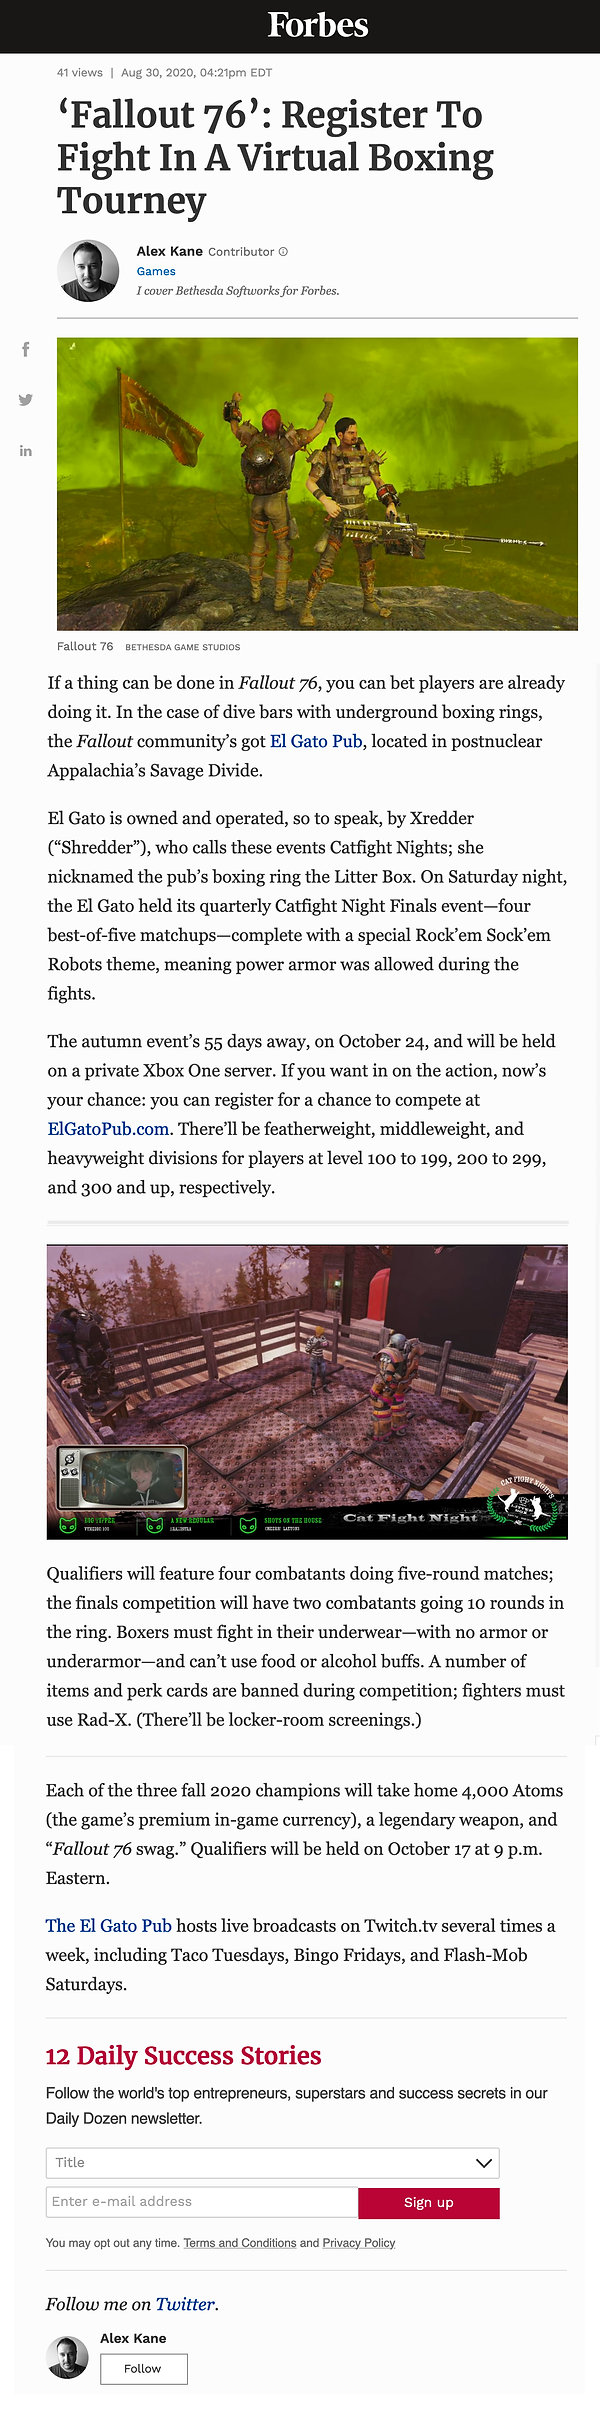 Forbes_Article.png